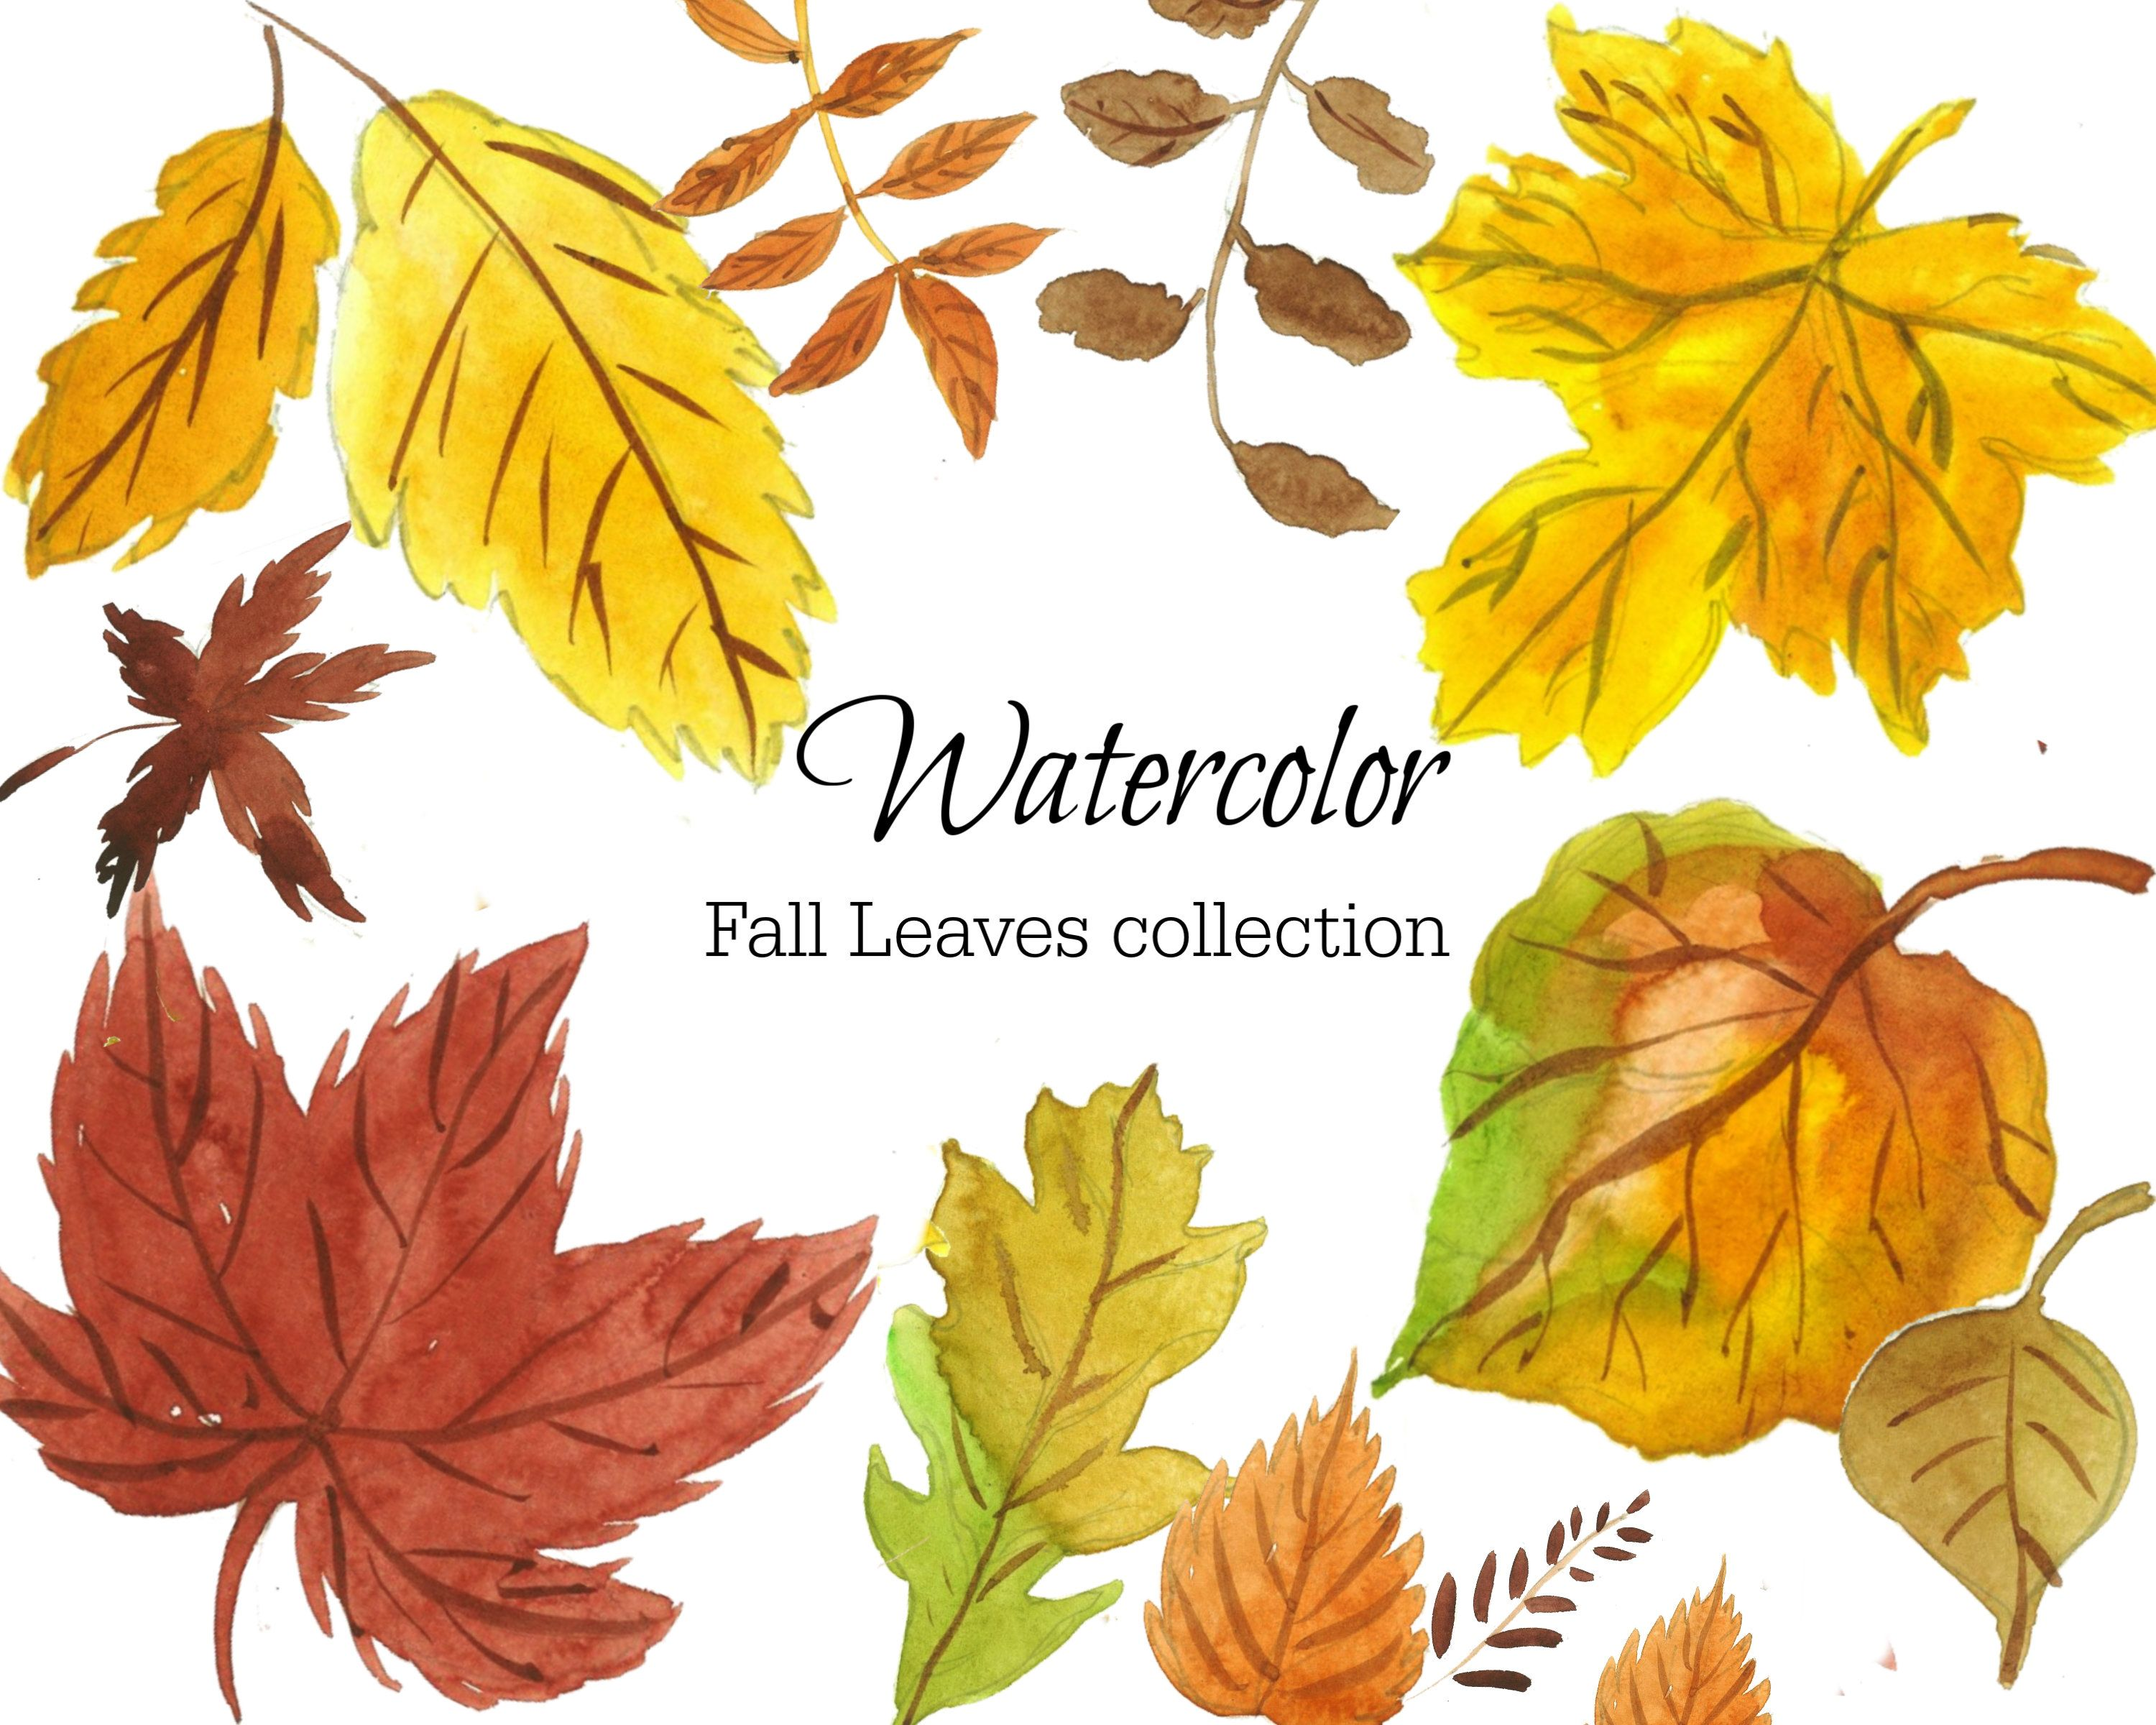 Watercolor Fall Leaves Handpainted Leaves Autumn Leaves Png